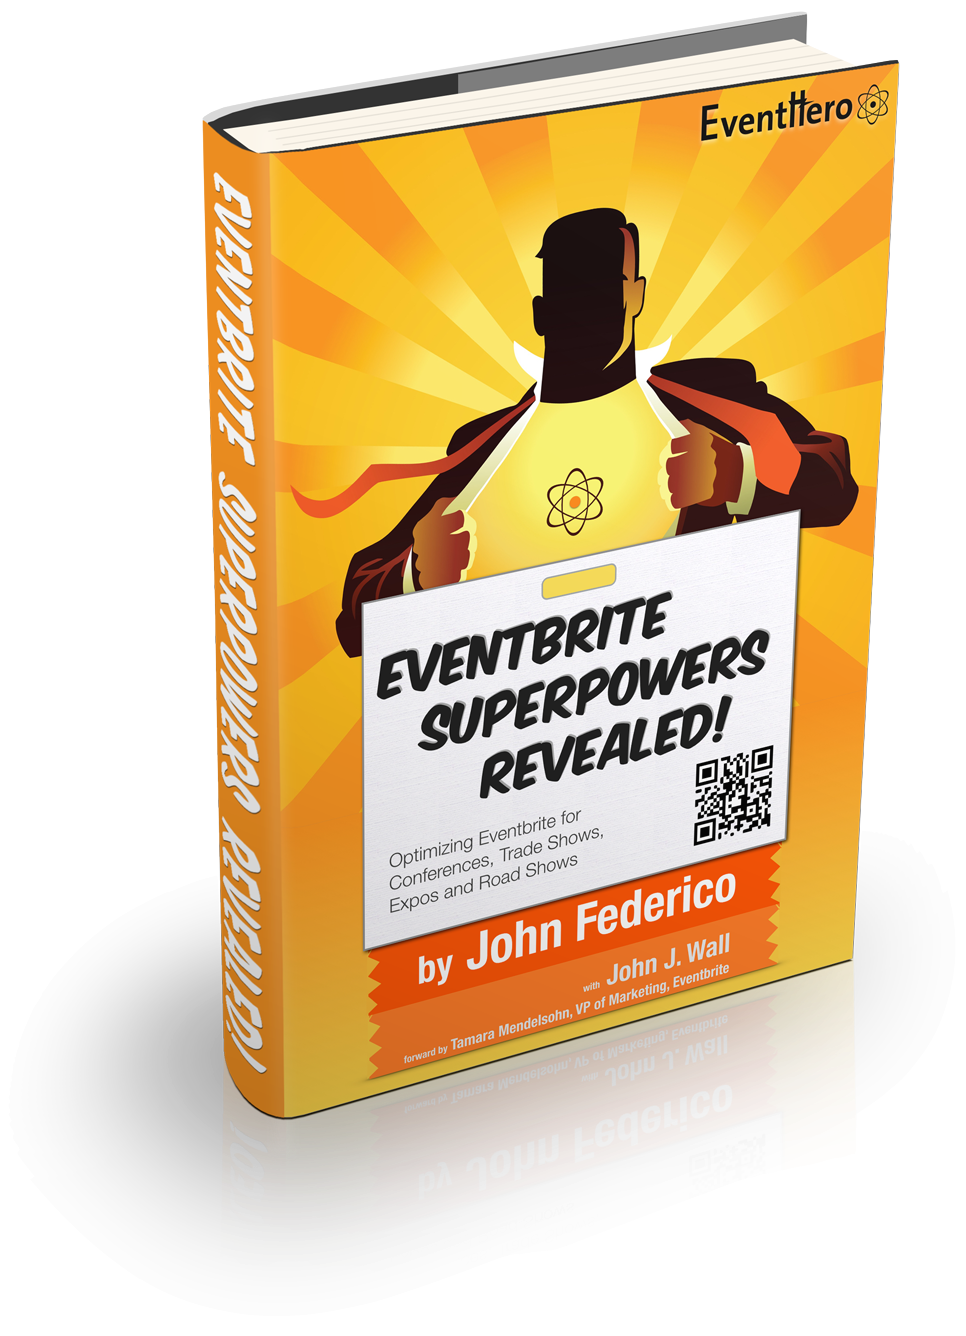 Eventbrite Superpowers Revealed - Through EventHero's partner program and API, the Company integrates with dozens of event registration systems to provide on-site event management software. The vast majority of EventHero customers used Eventbrite as their registration system.As part of a co-marketing program, this is a book authored by me as a demand generation and lead capture tool - but with a twist: the book's forward was written by Eventbrite's VP of Marketing while paid media was used to support the book, secured by Eventbrite.